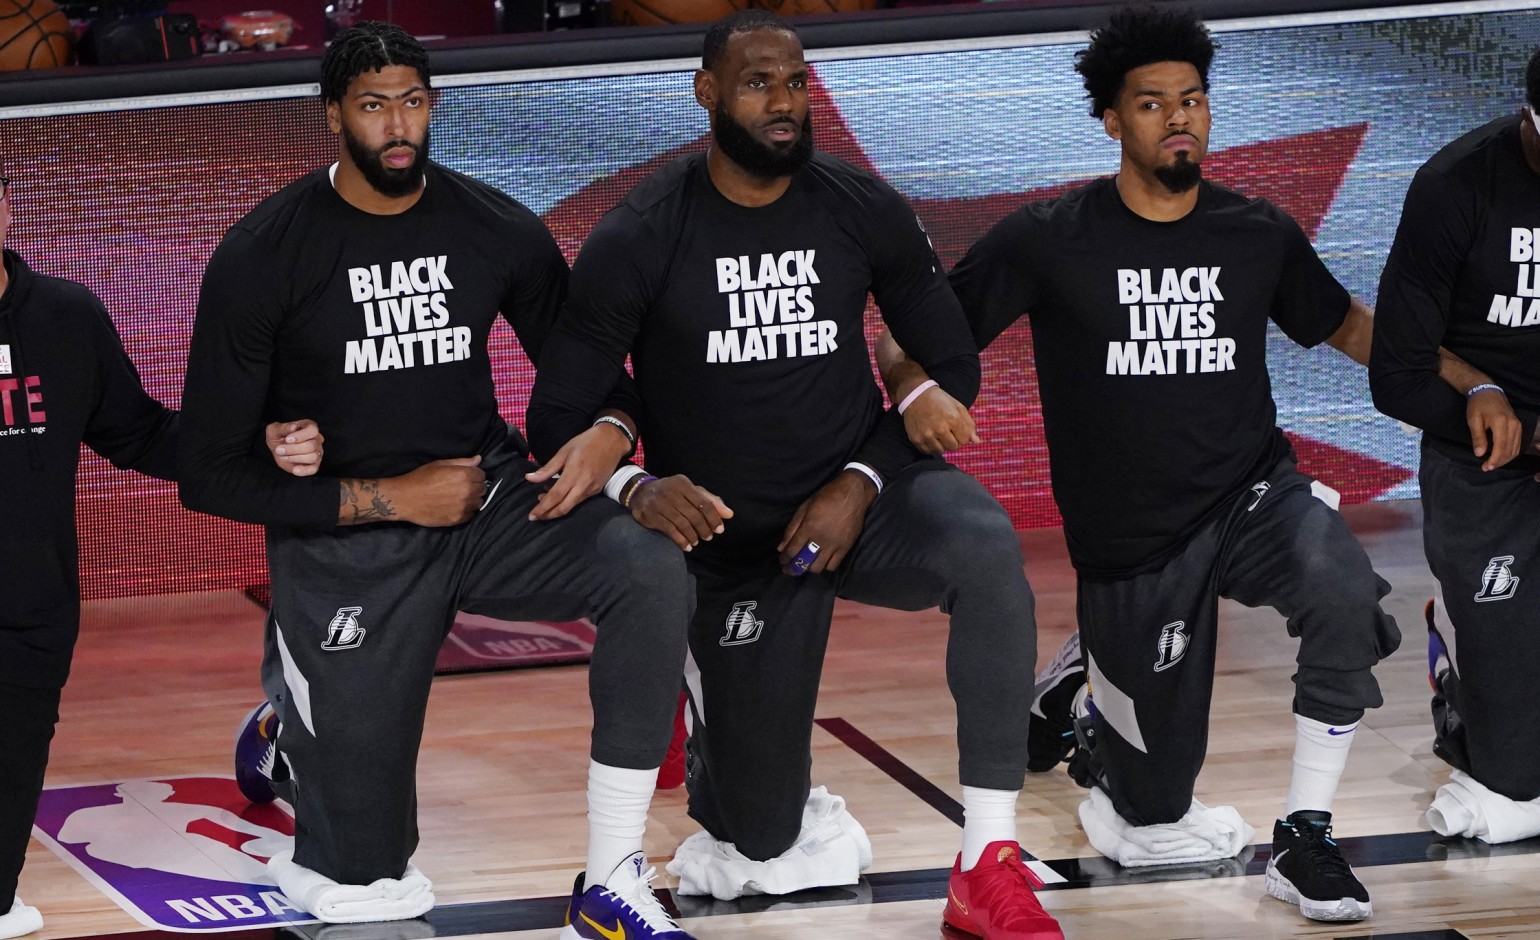 Trump is right: The